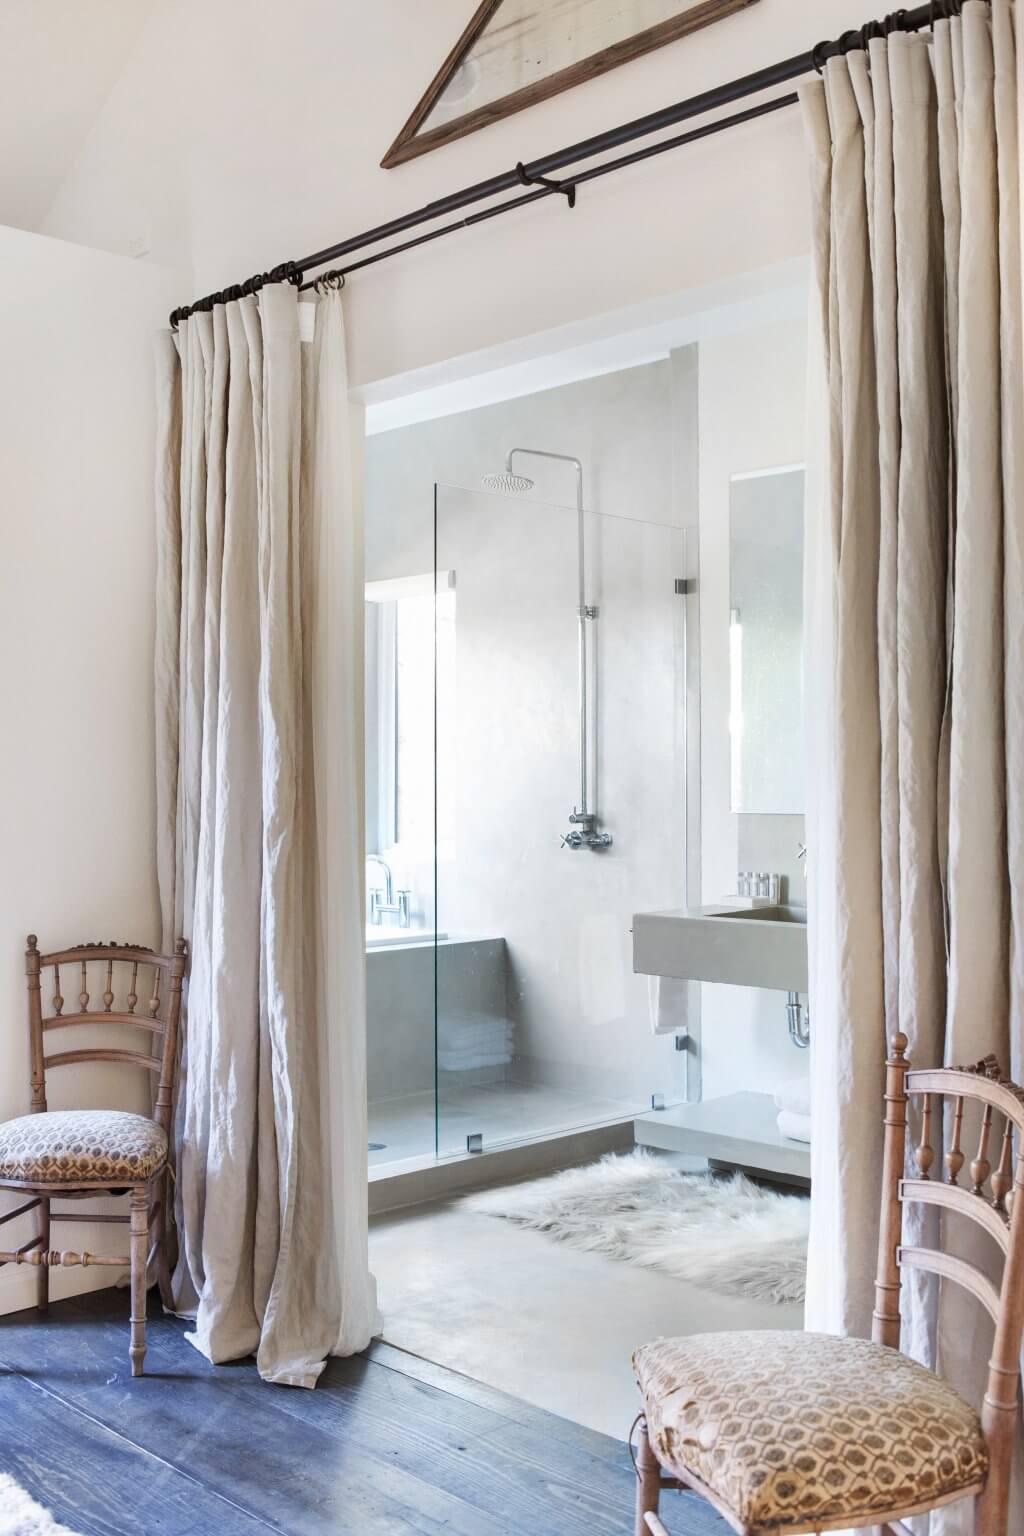 Bathroom-room-divider-with-curtains.jpg